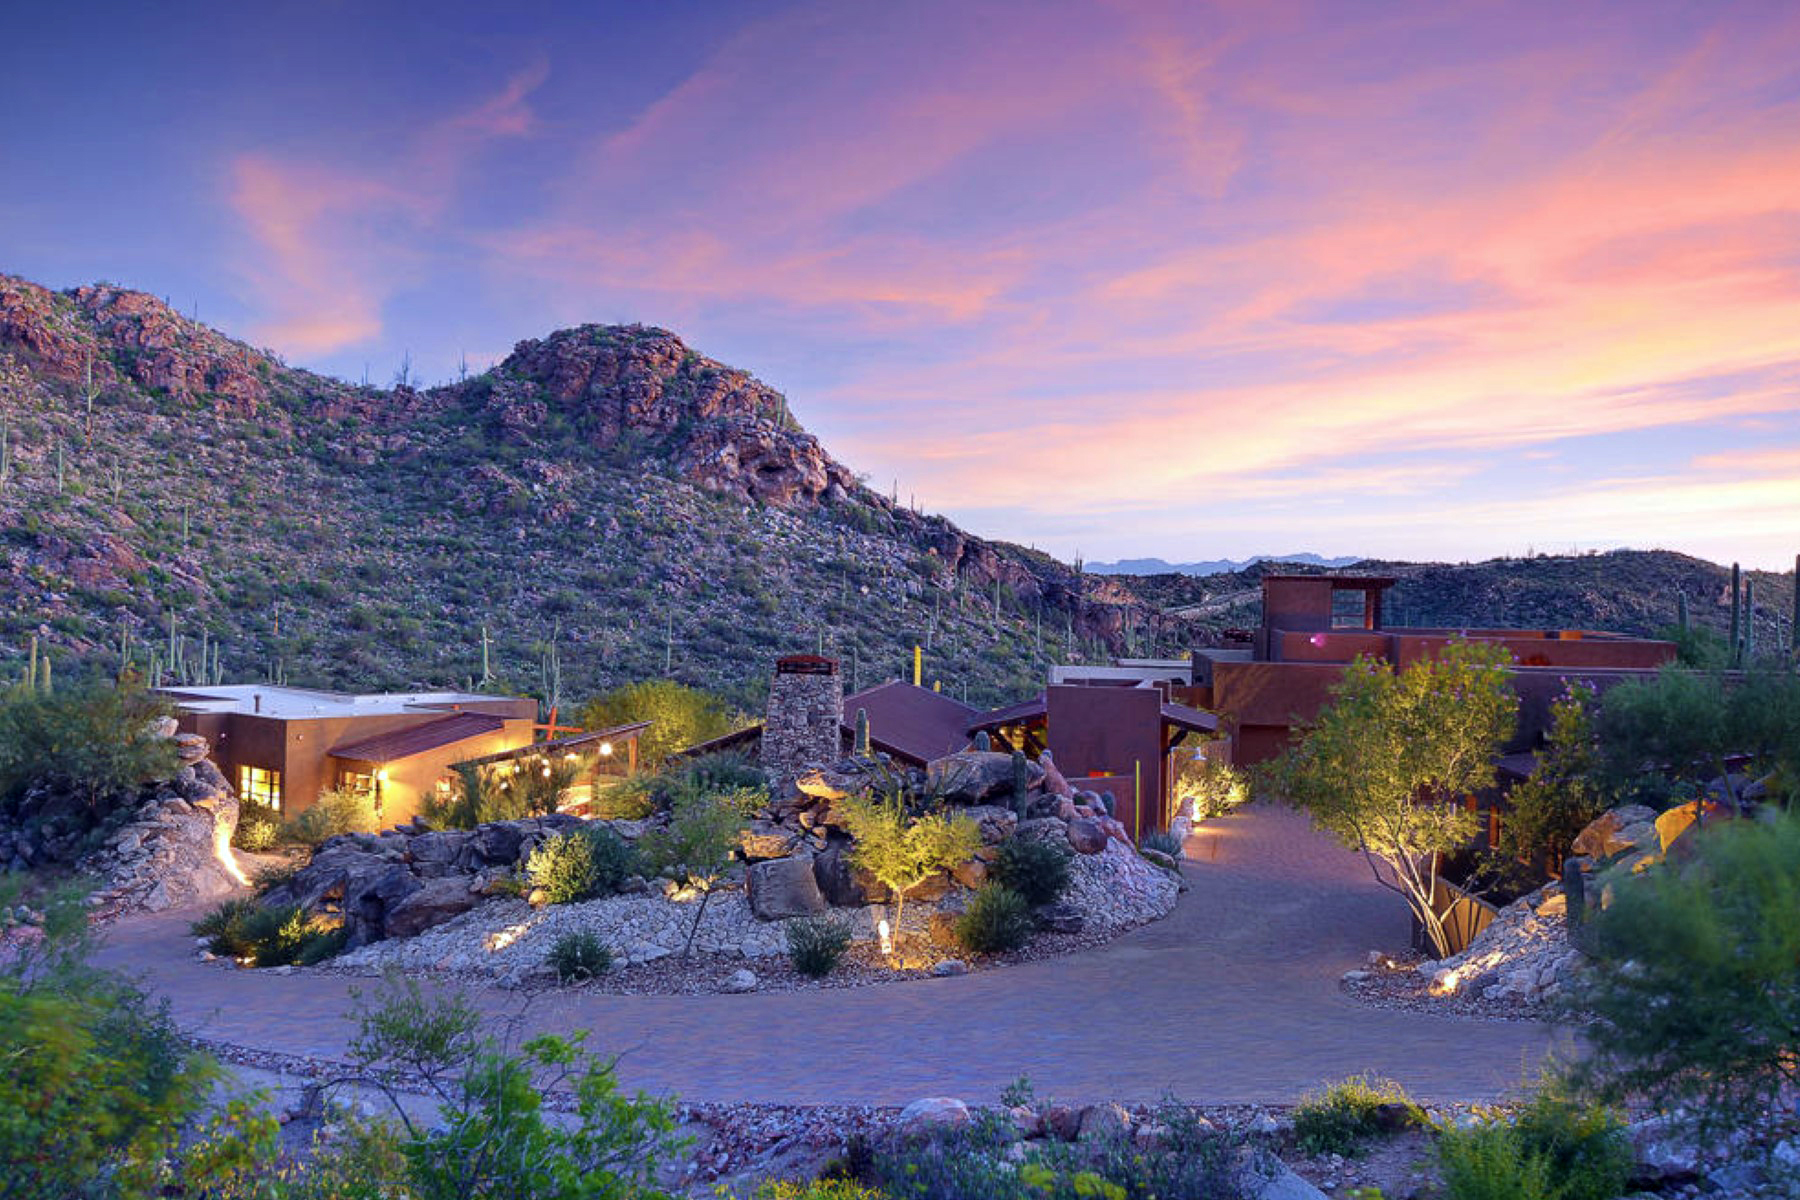 Property For Sale at Saguaro Ranch Exceptional Living In This Amazing Resort-Like Setting